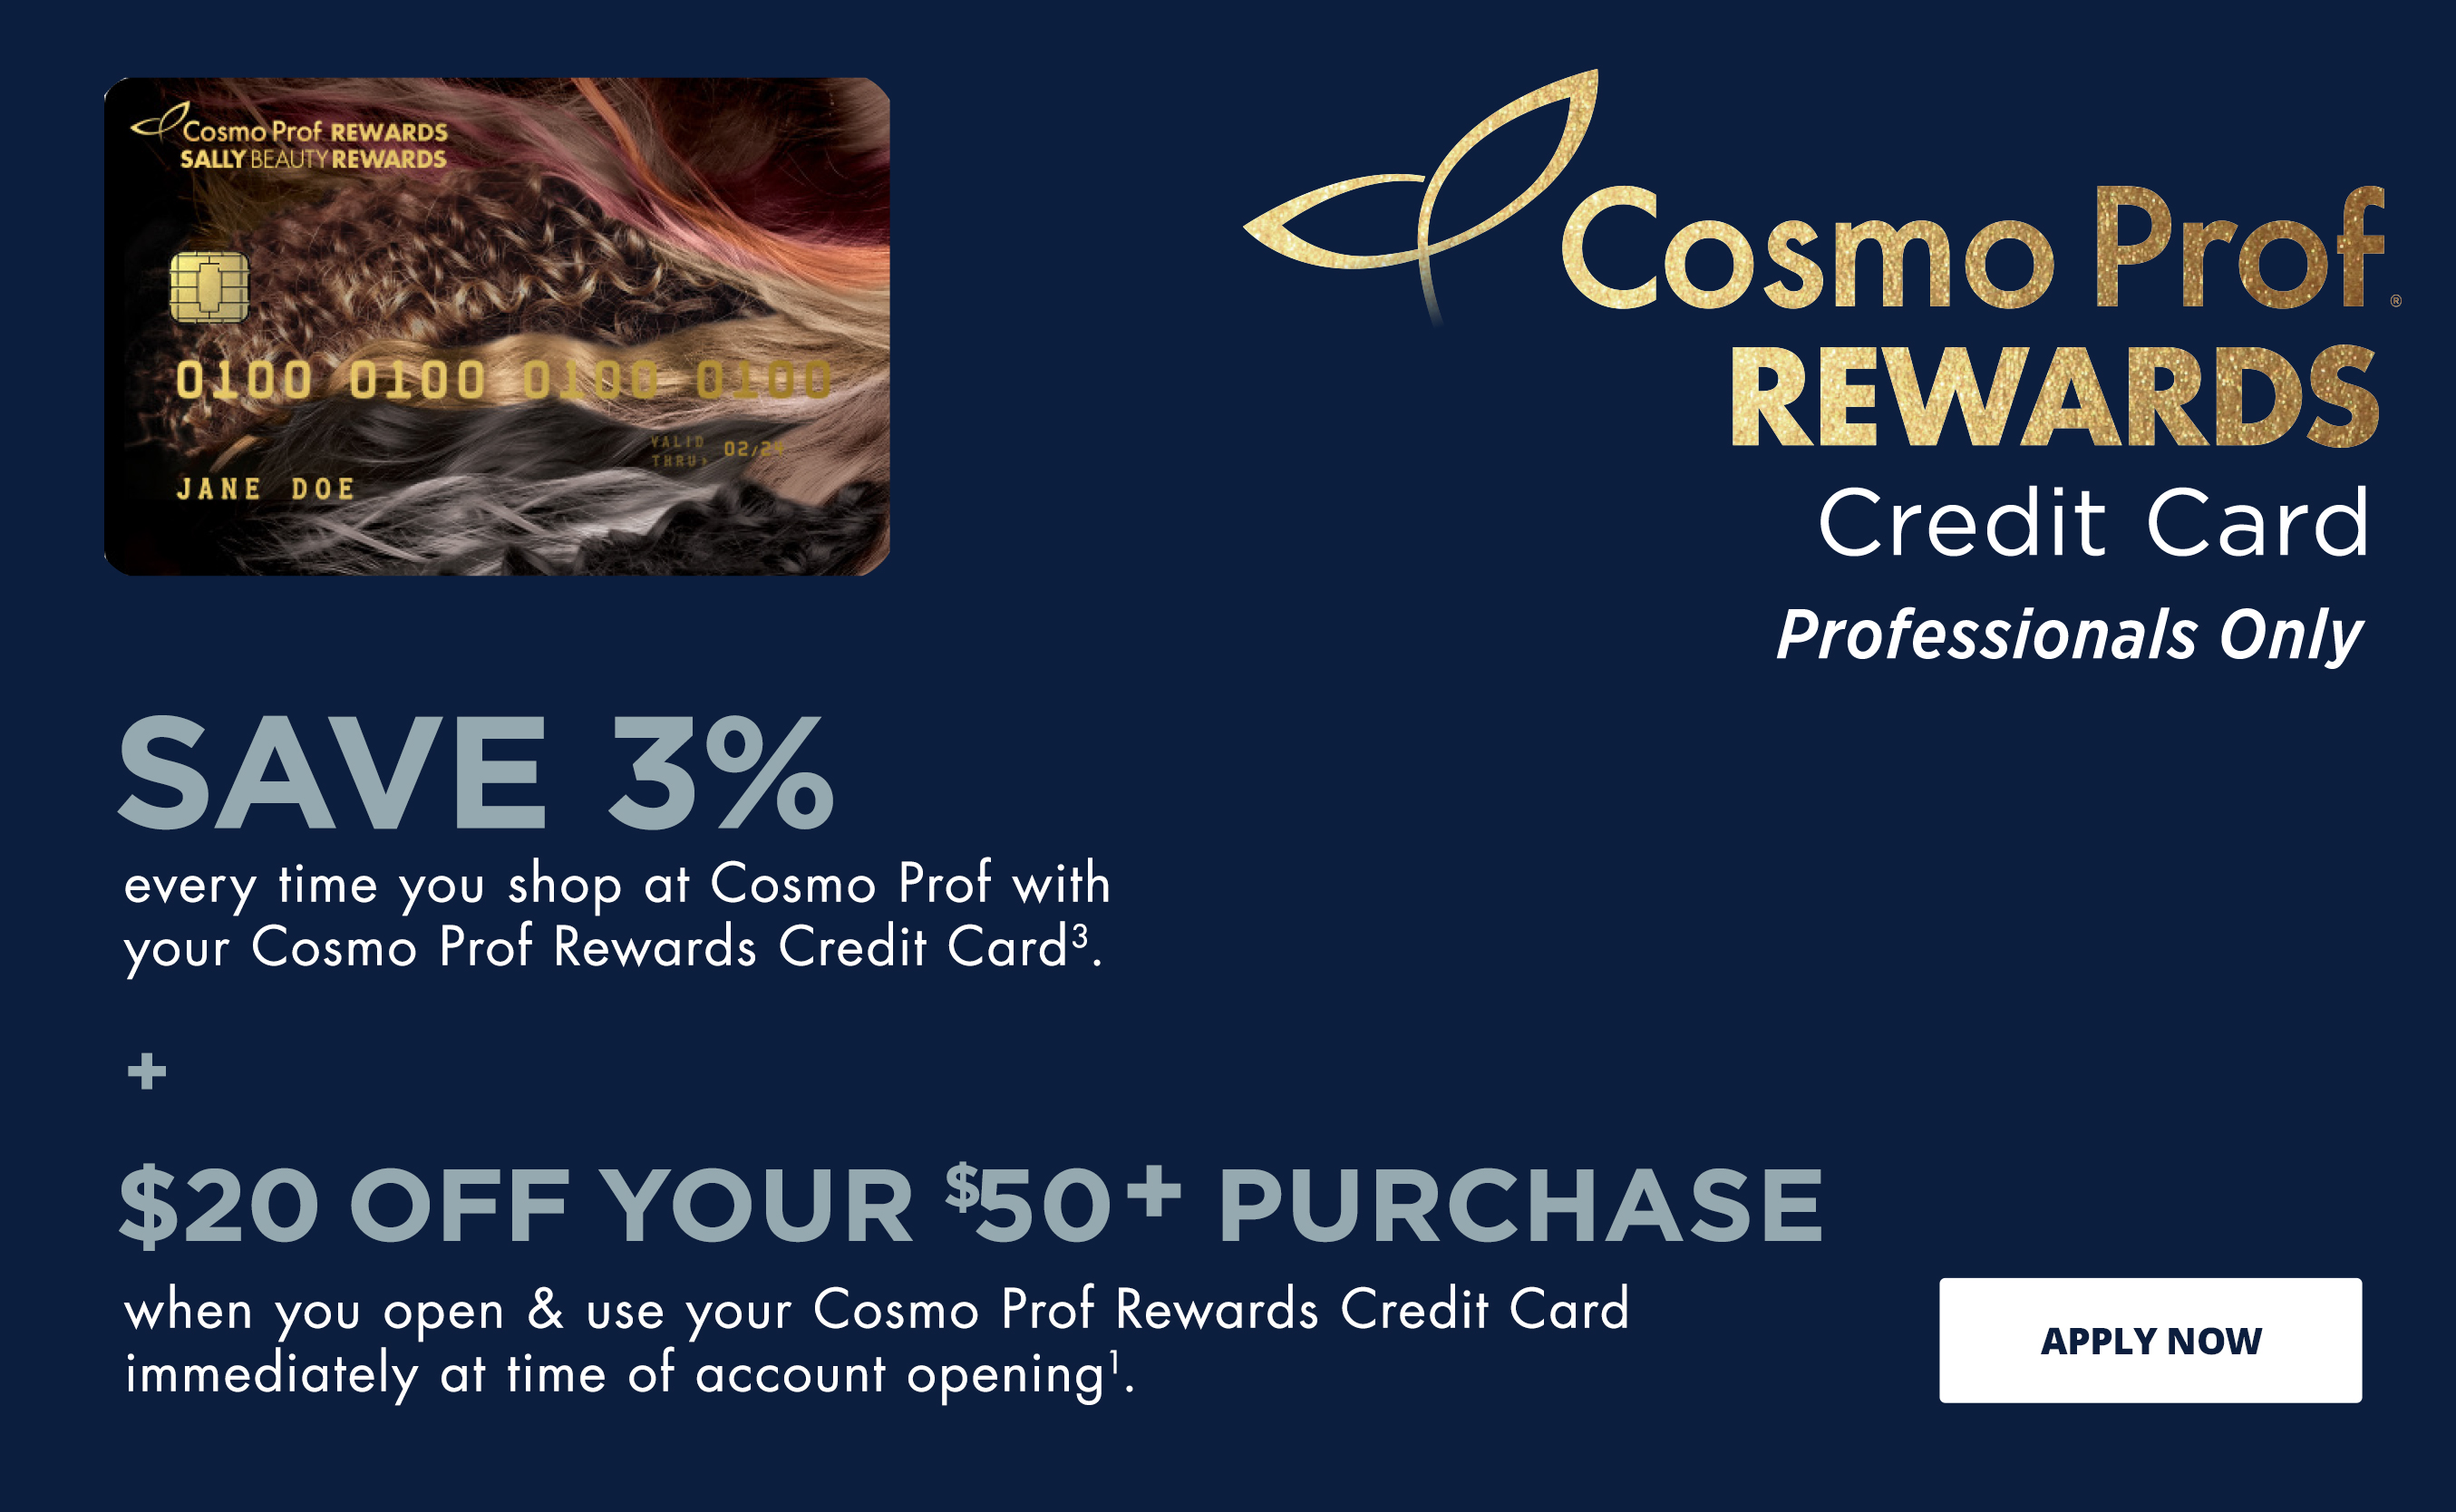 Cosmo Prof Rewards Credit Card